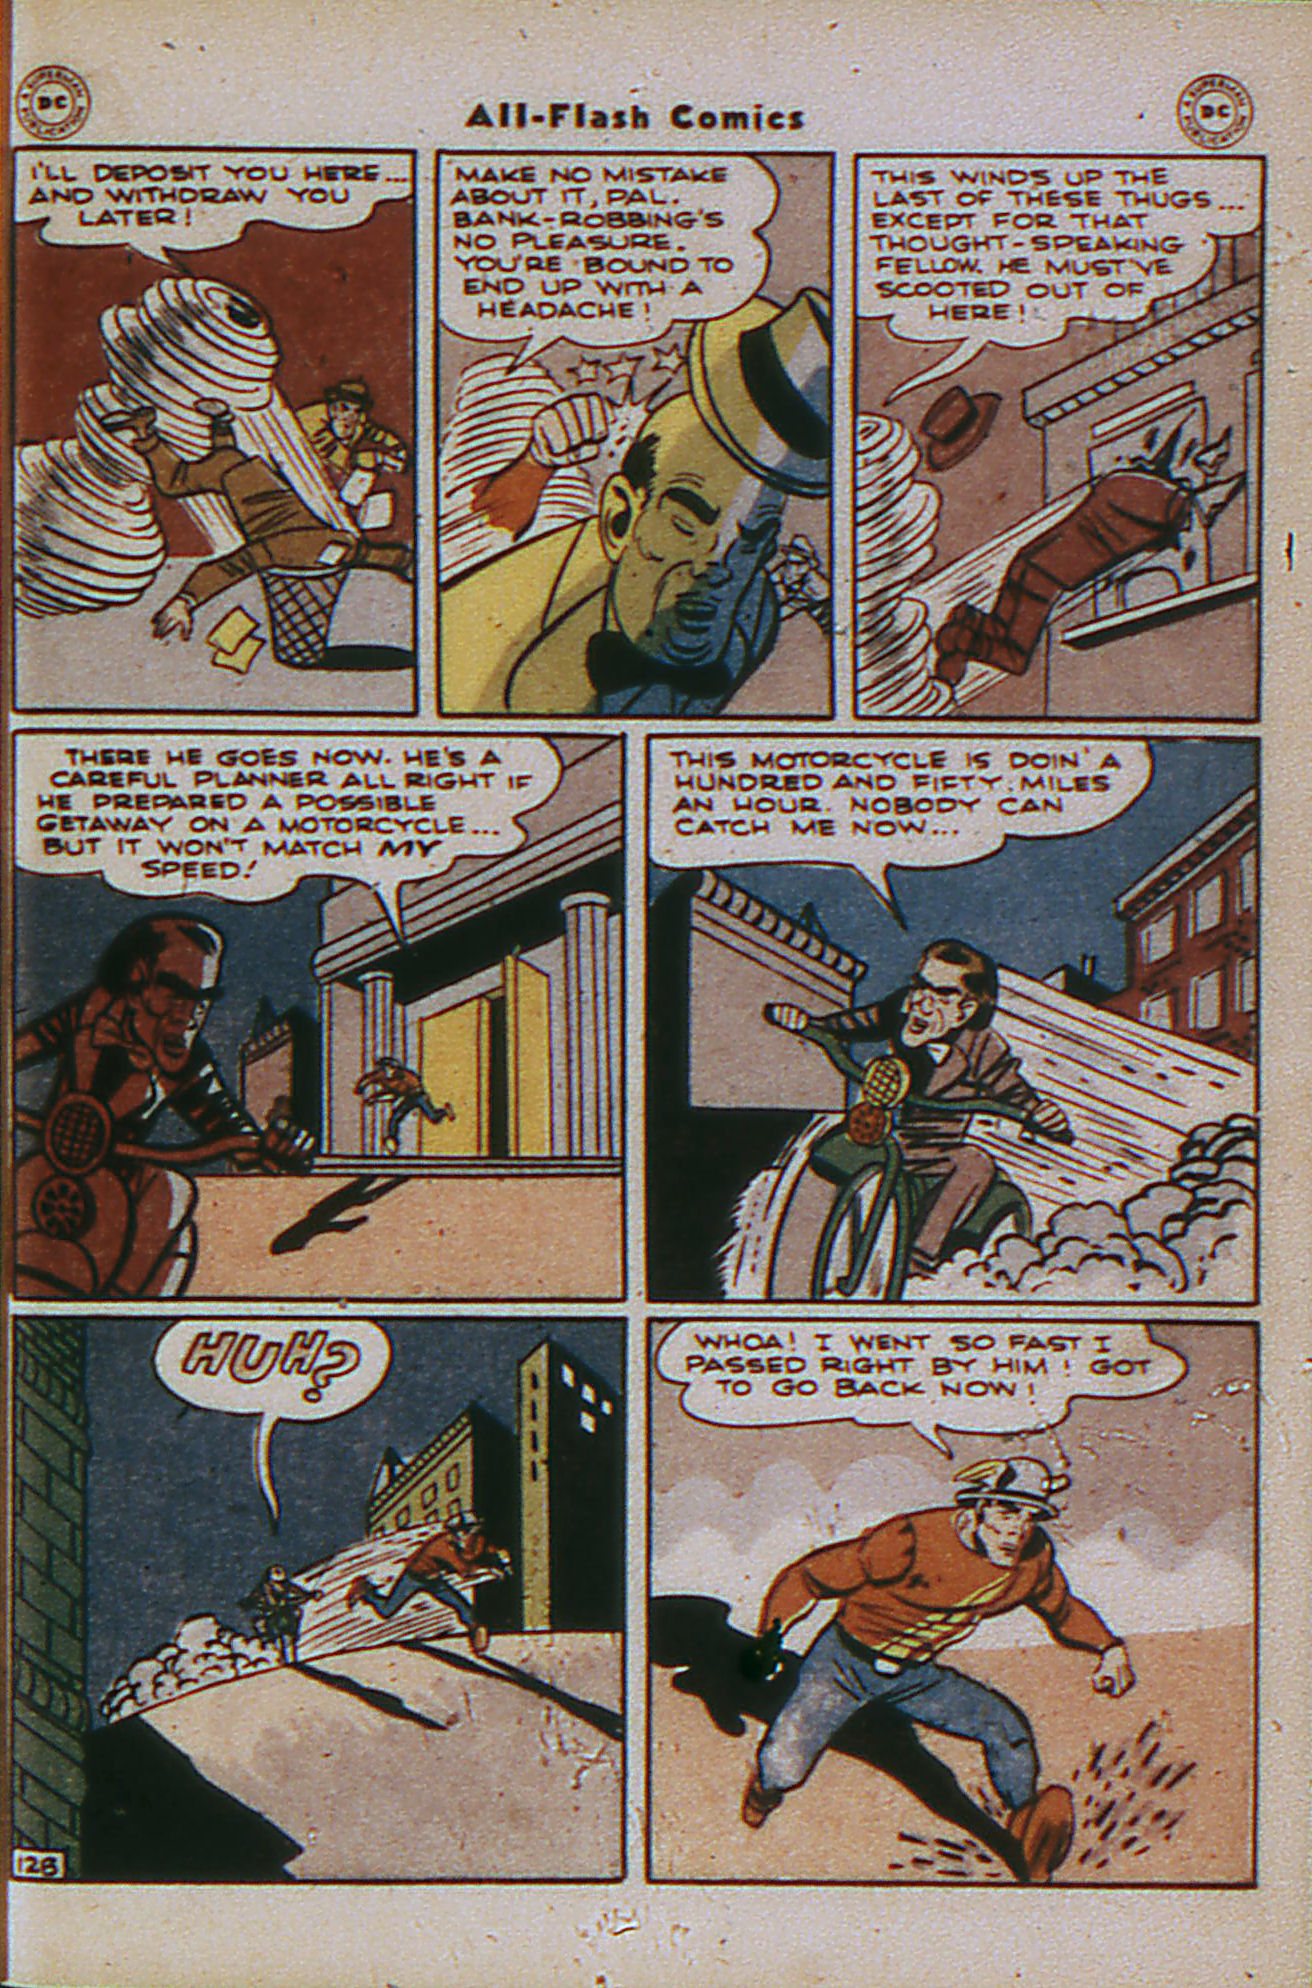 Read online All-Flash comic -  Issue #26 - 28